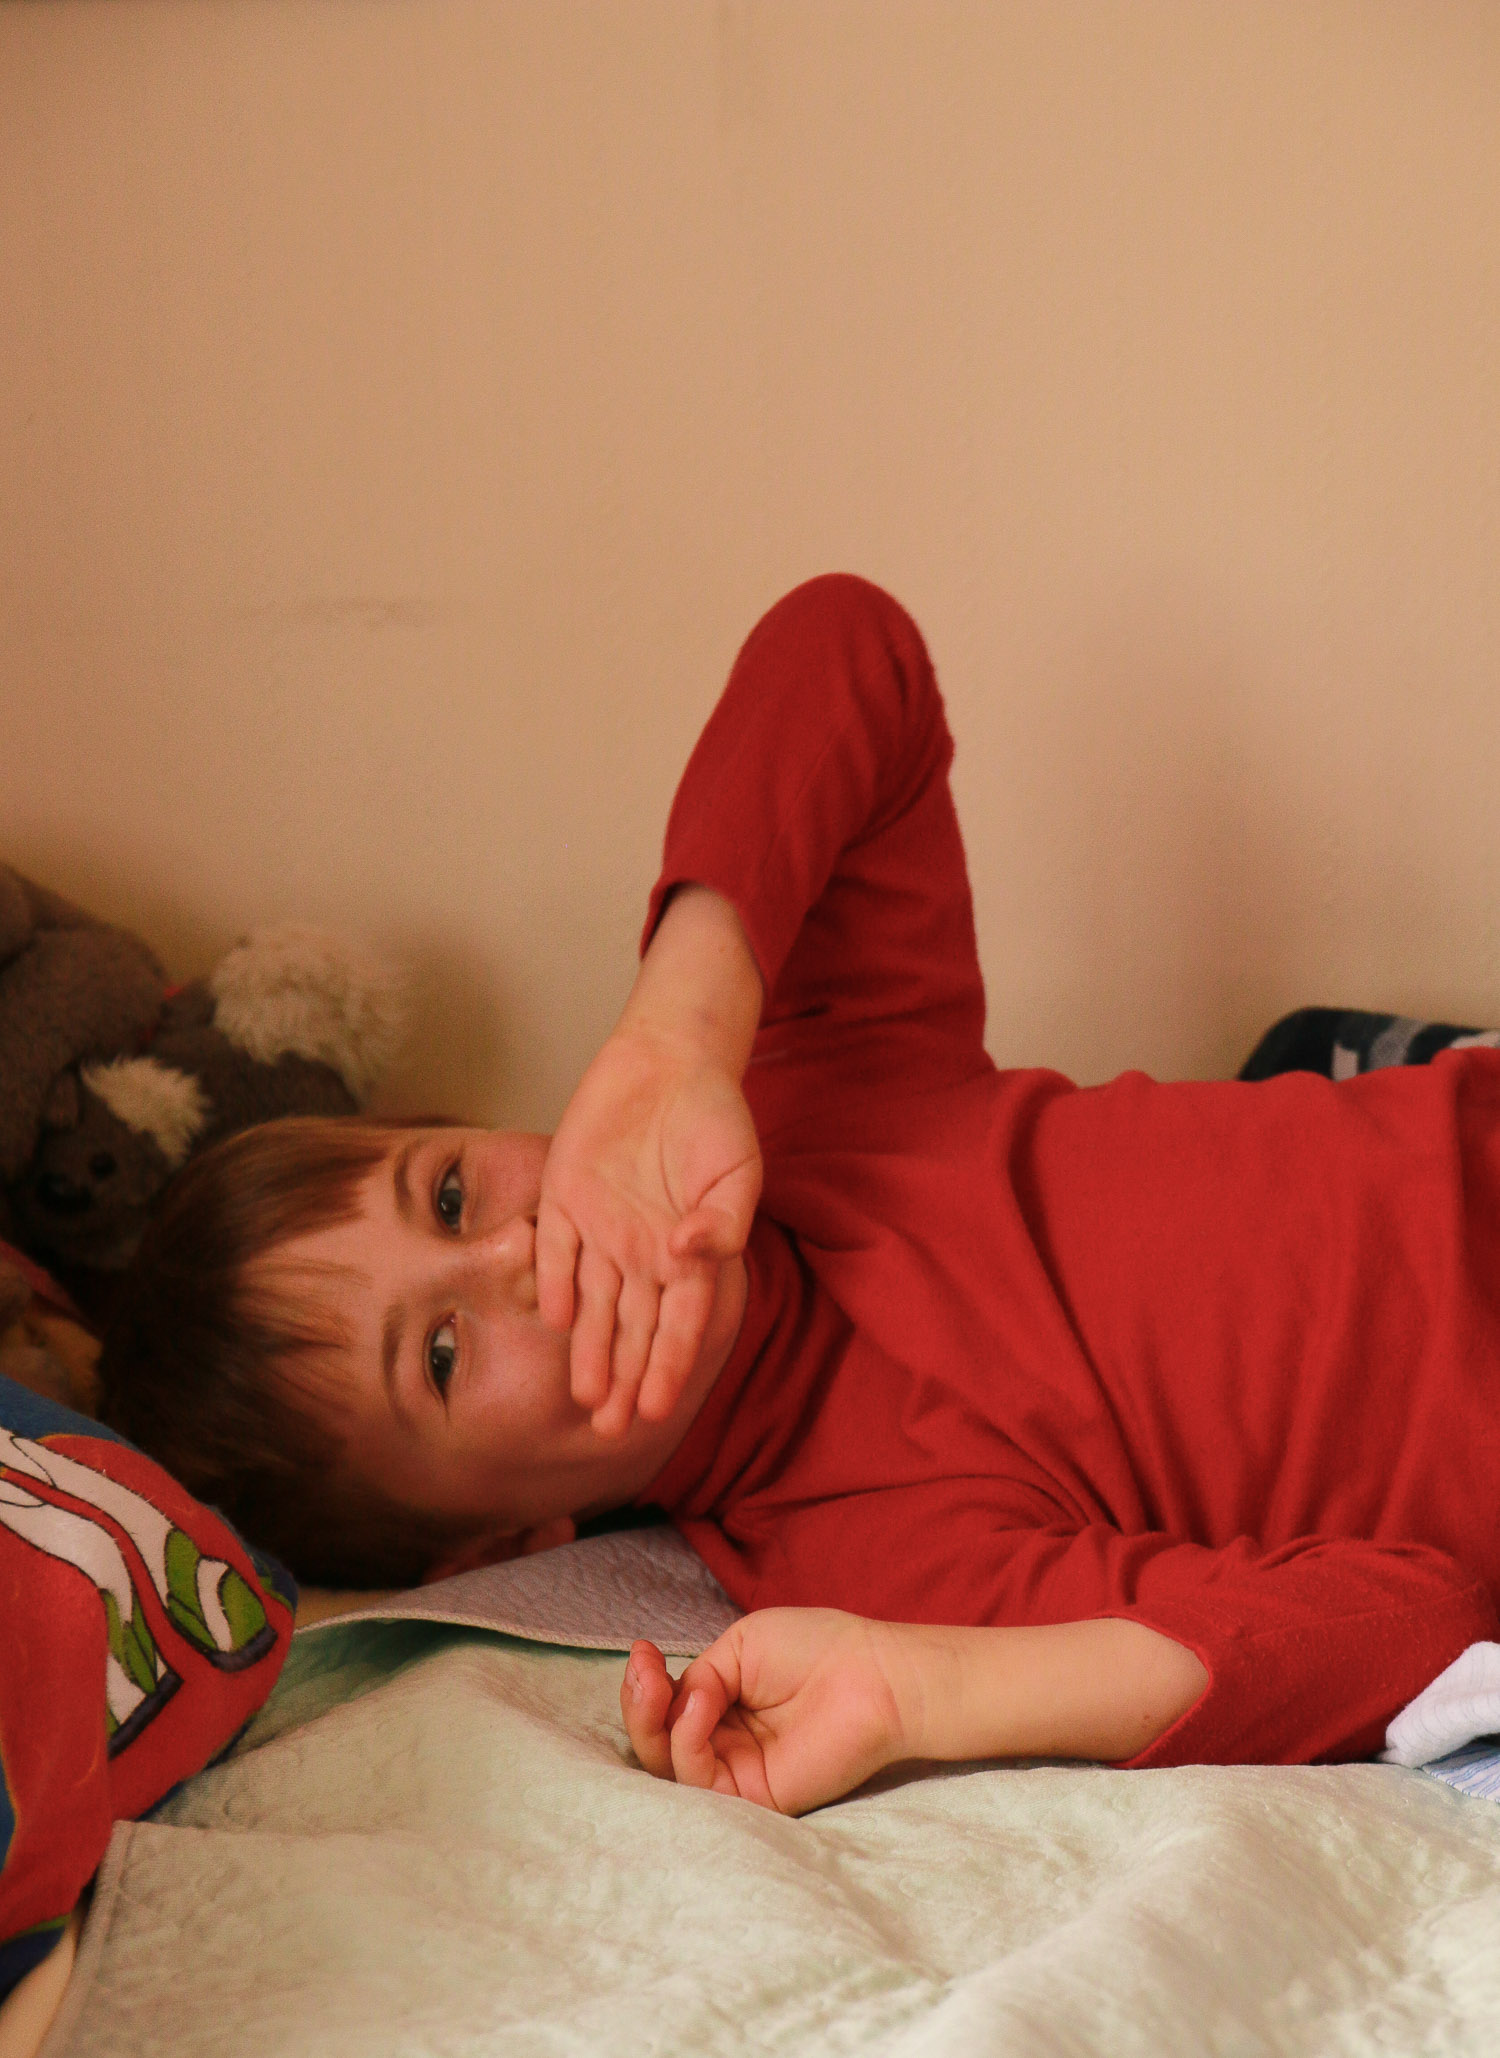 young-boy-wearing-red-lying-on-bed-looking-at-camera.jpg